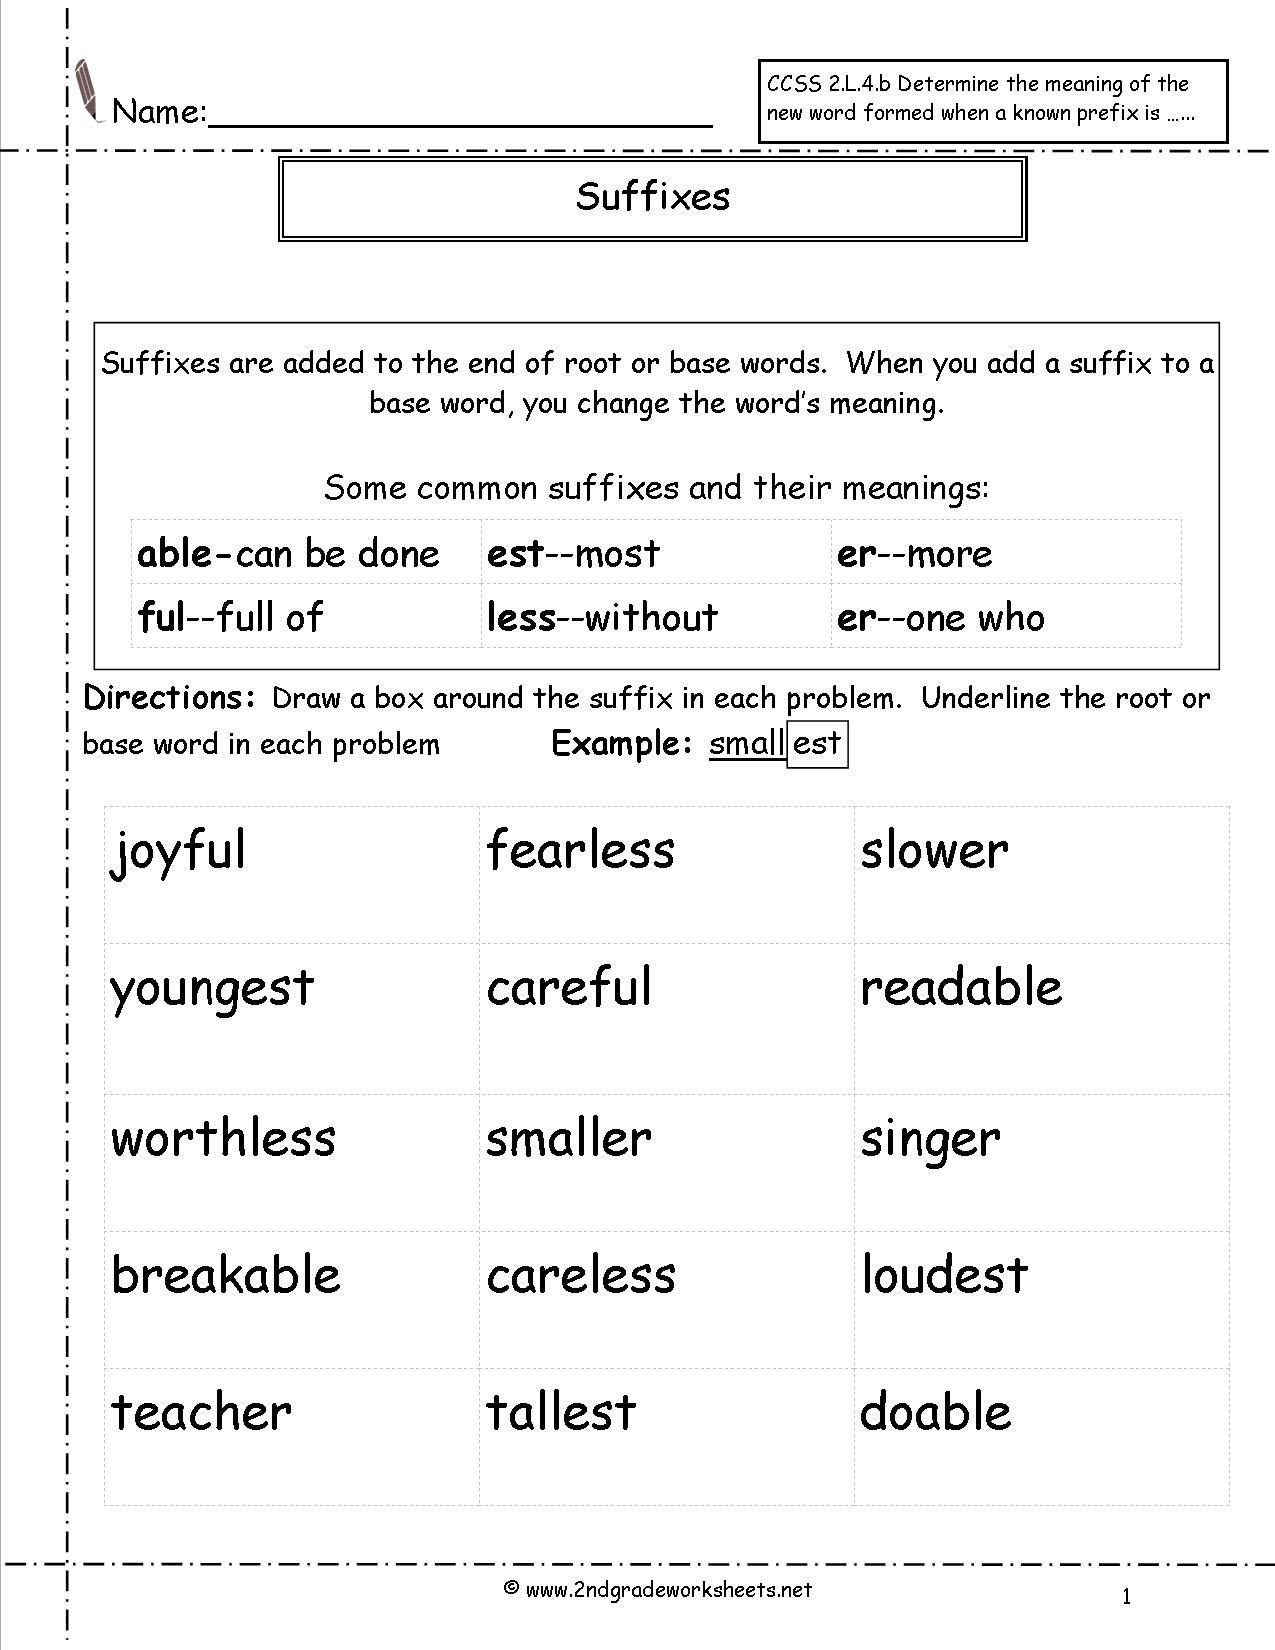 20 Suffixes Worksheets For 2nd Grade